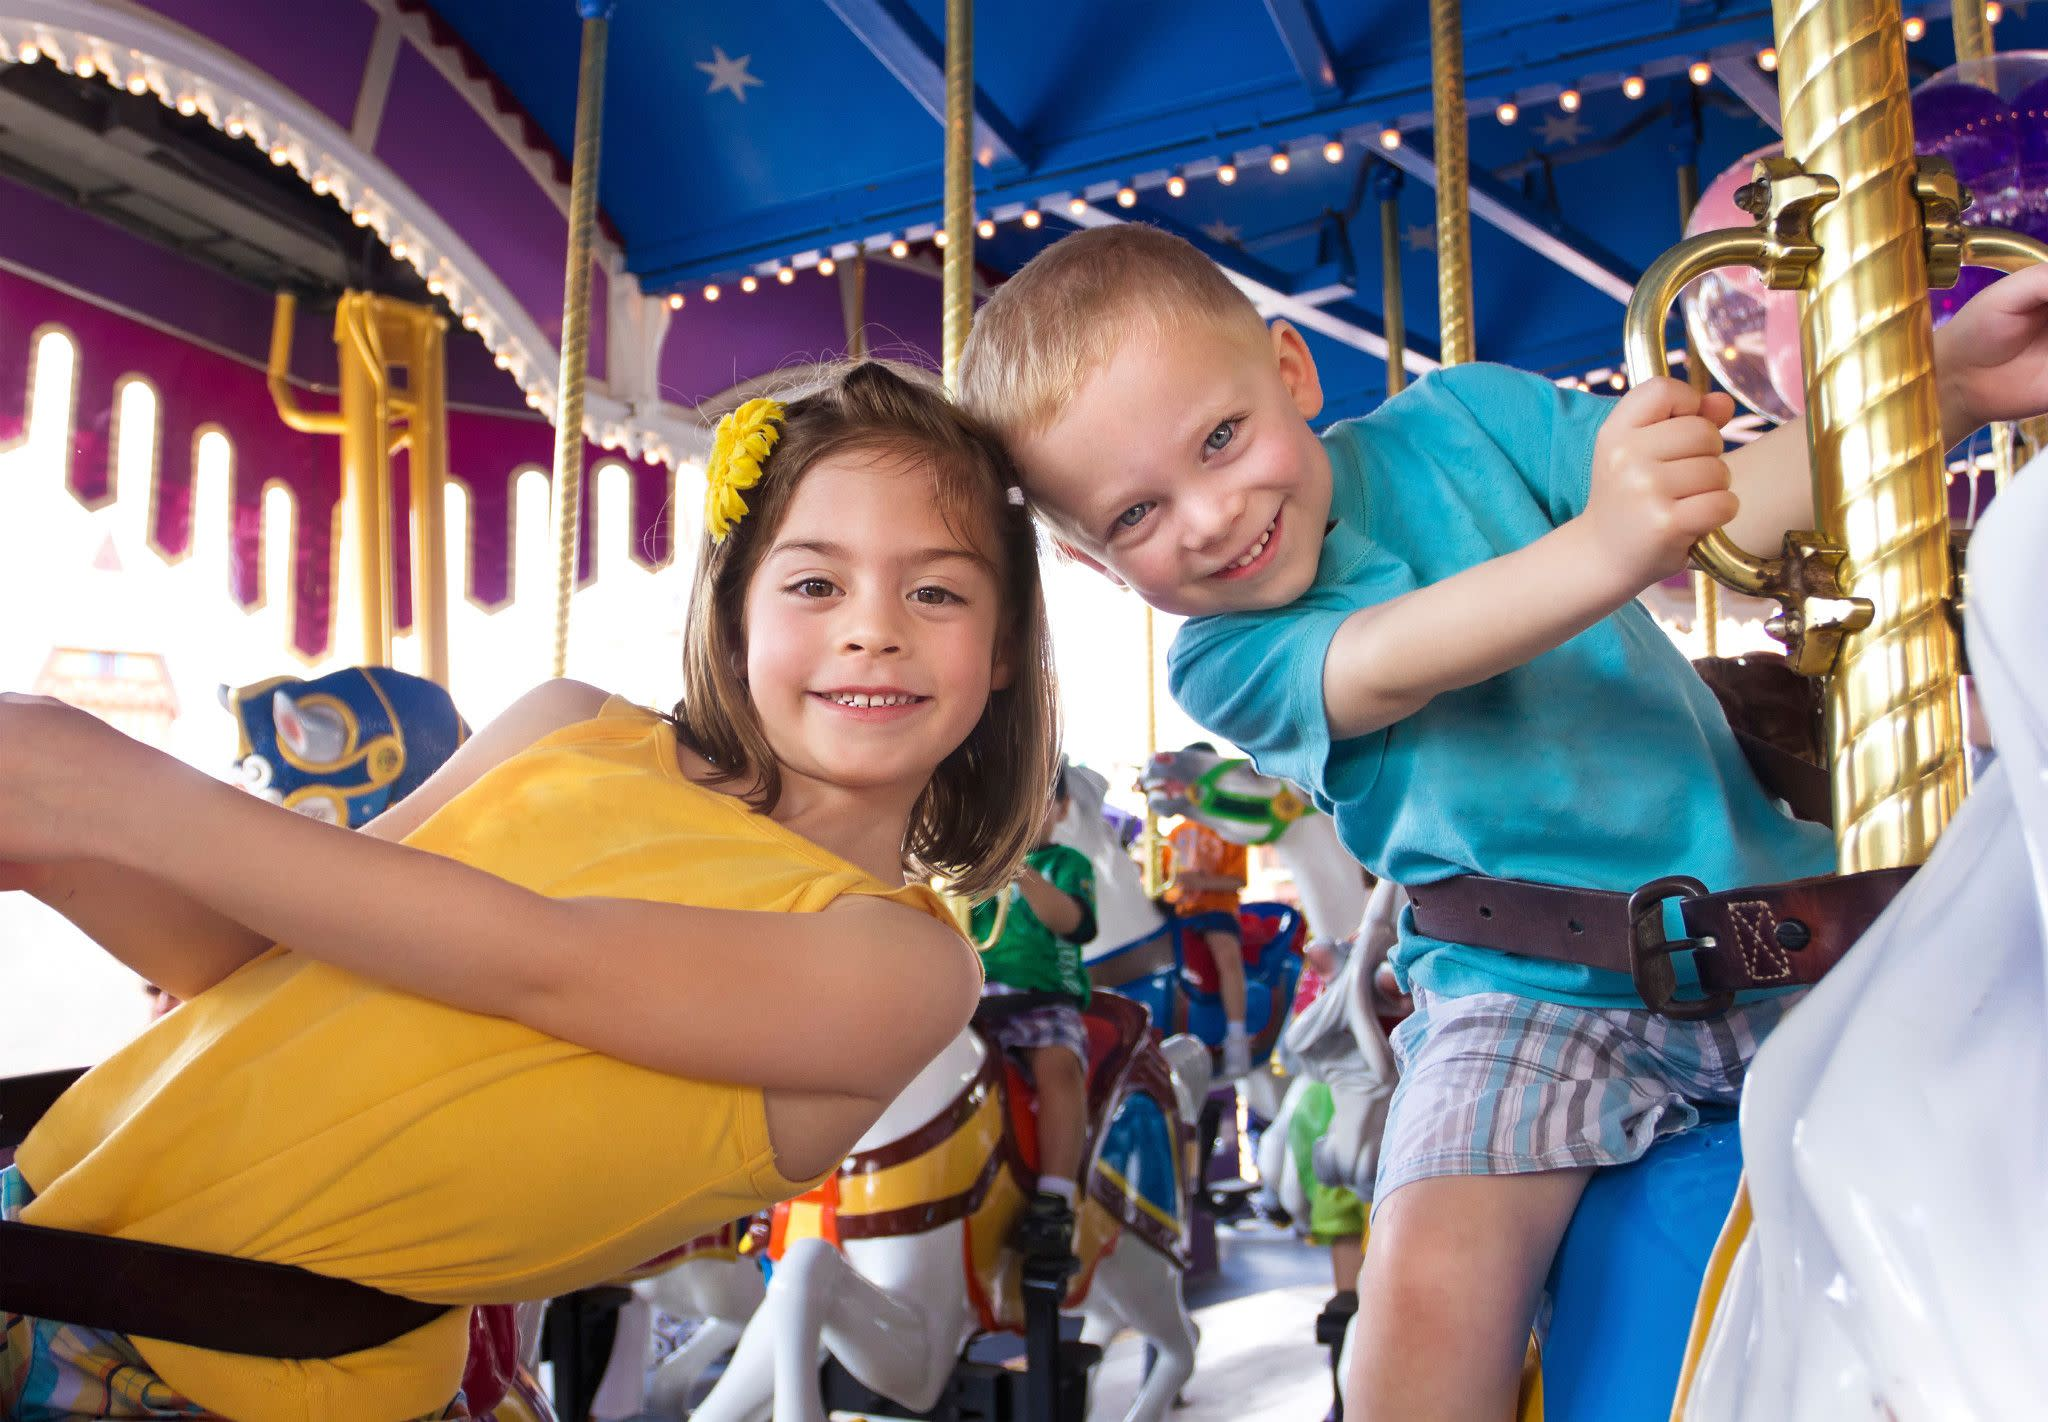 Grandparents Can Enjoy Shared Experiences With Their Grandkids at Orlando's Theme Parks